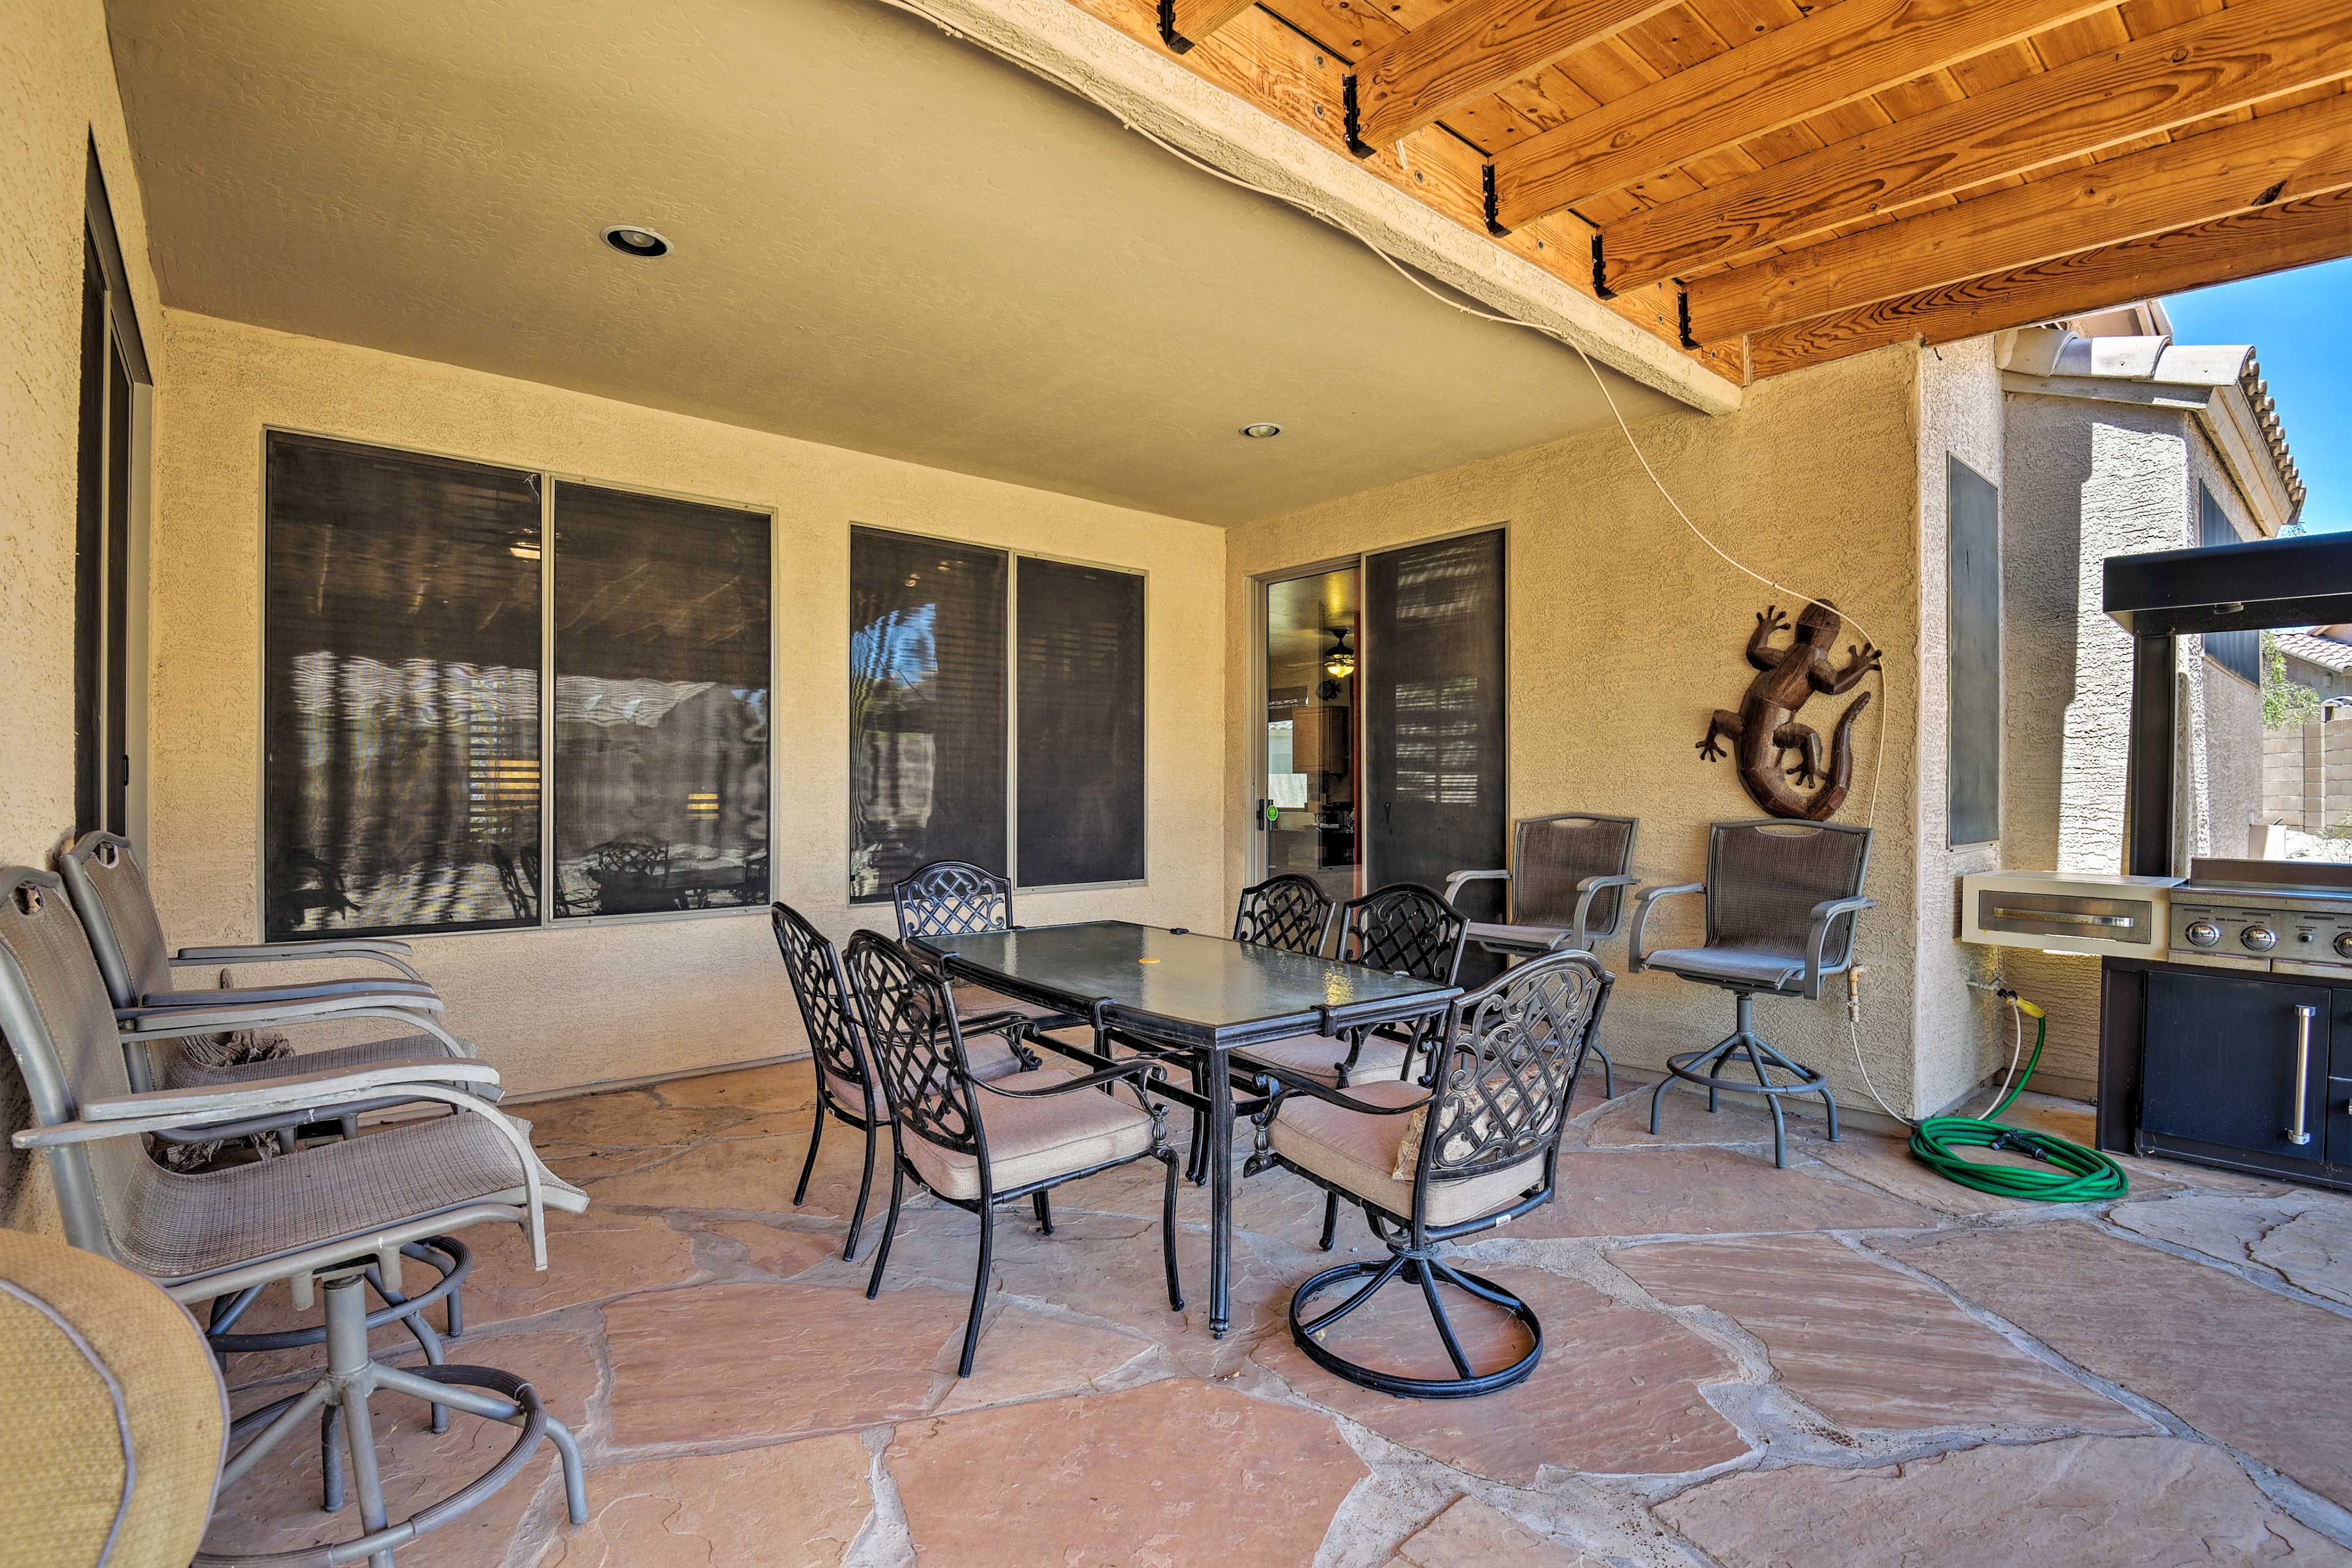 Dine al fresco on the patio and revel in the balmy Arizona air while you eat.